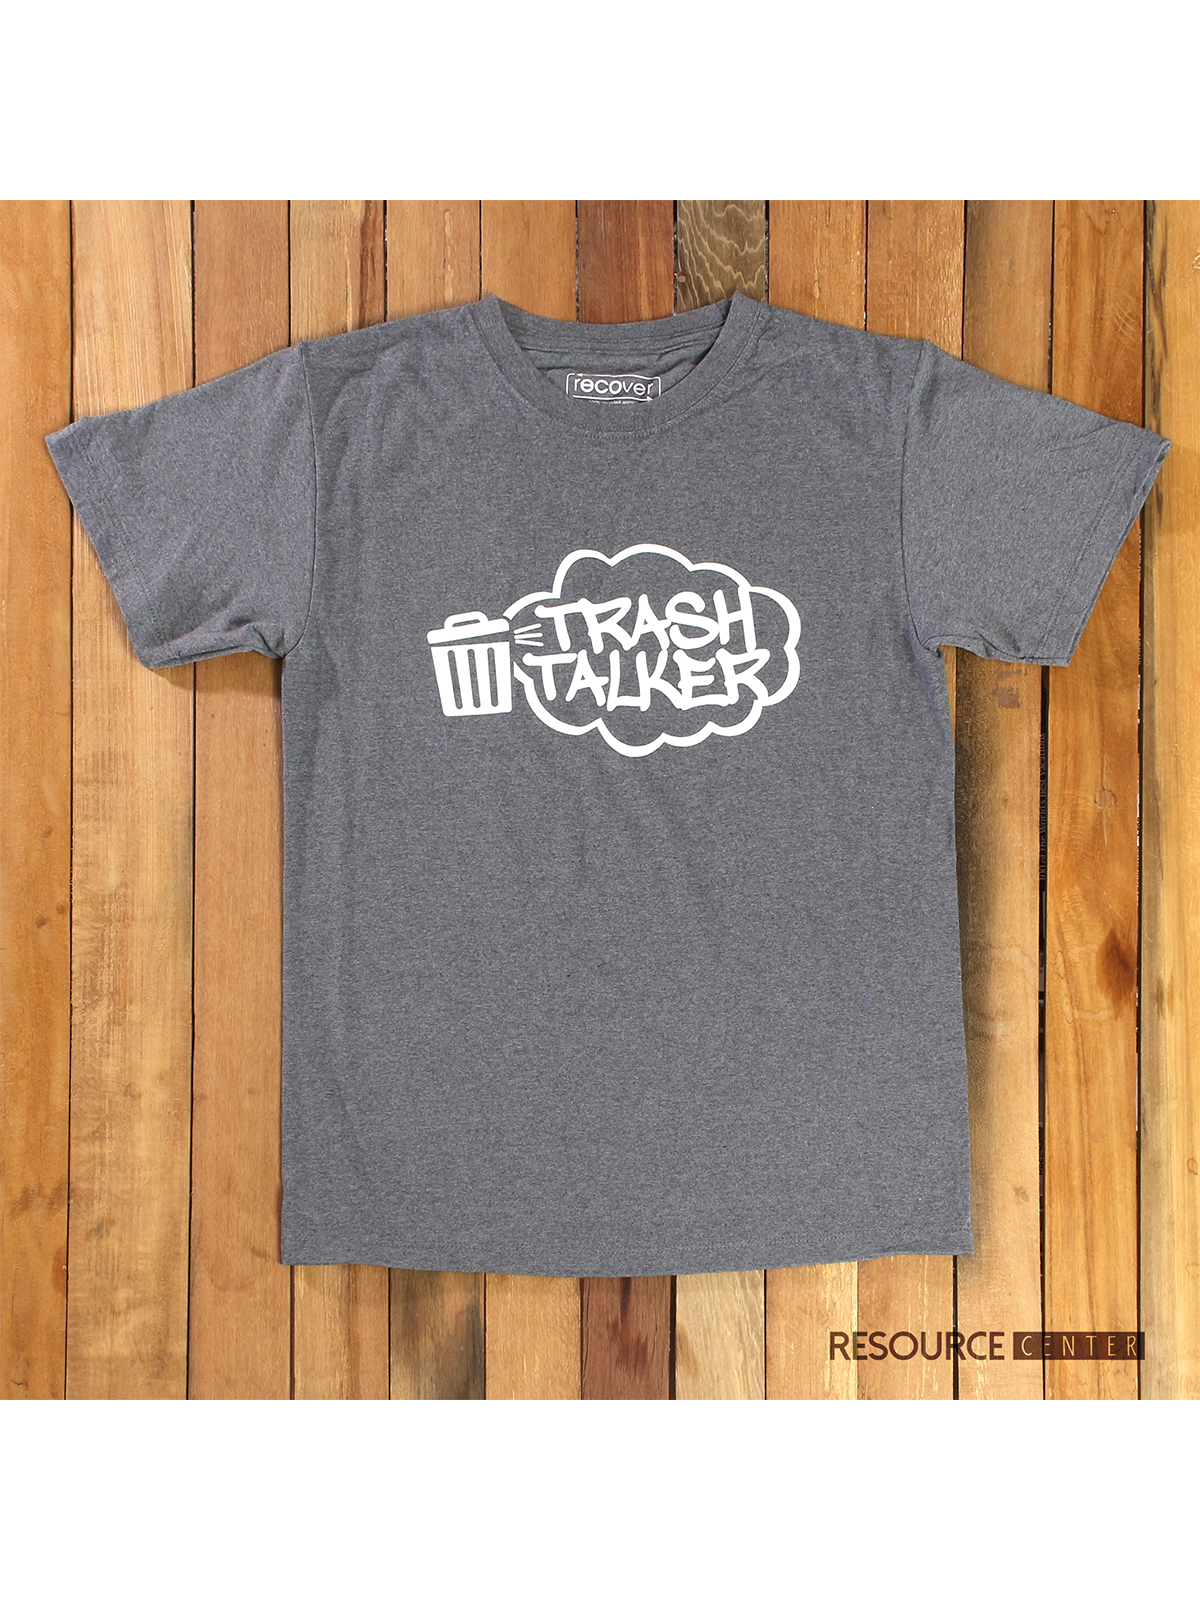 SUSTAINABLE T-SHIRT - MEDIUM - DARK GREY - TRASH TALKER